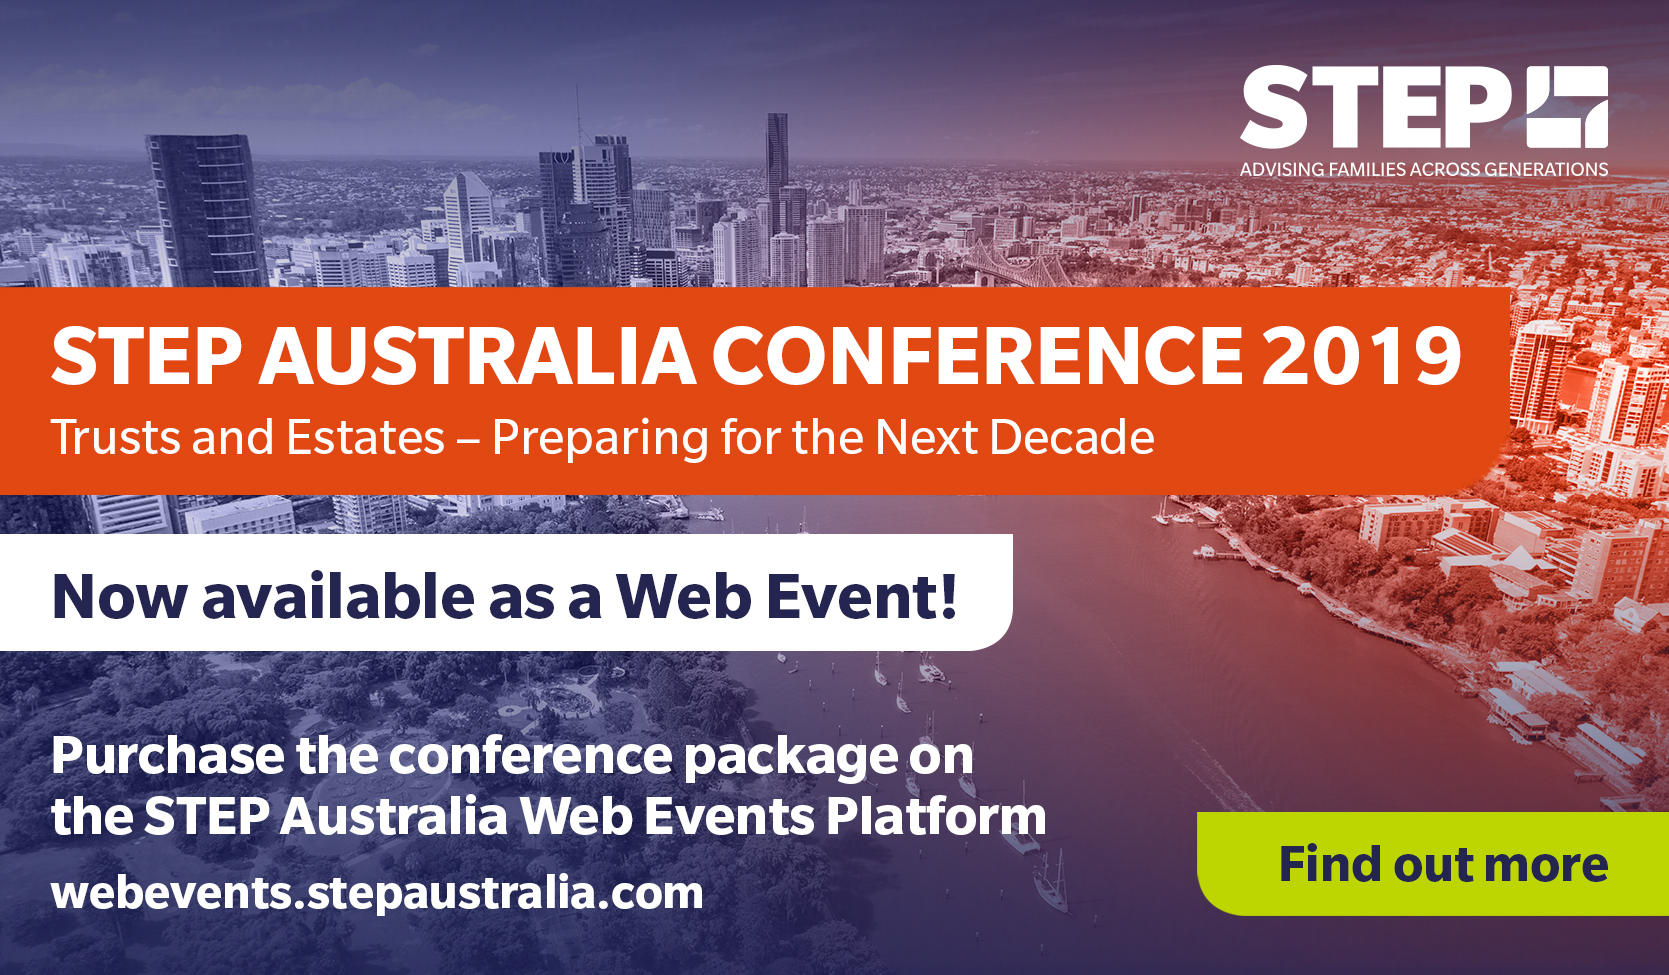 STEP Australia 2019 Conference